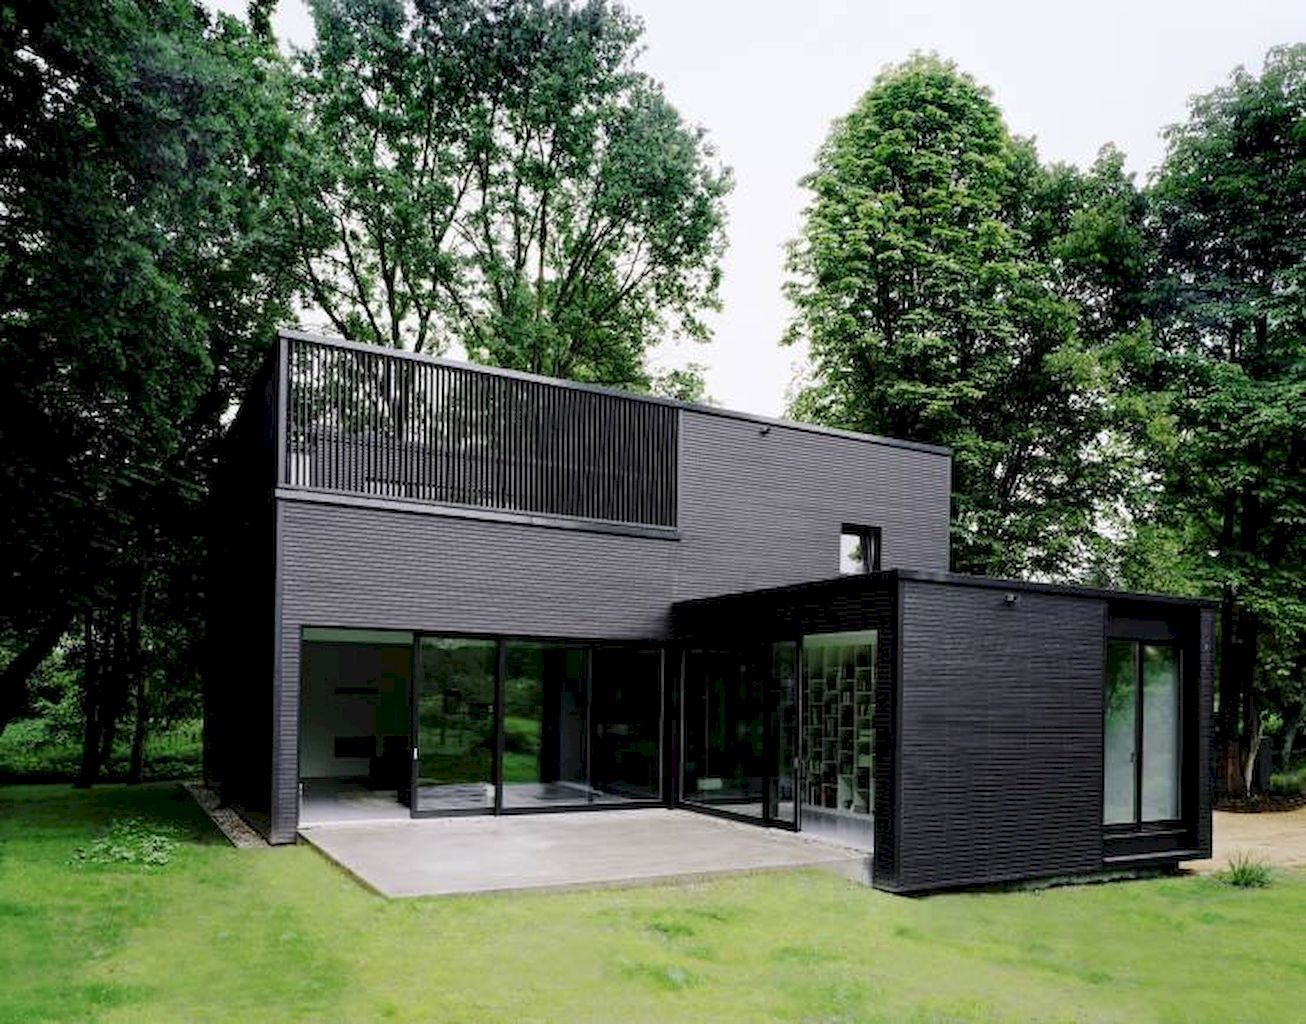 Awesome 65 Gorgeous Shipping Container House Ideas on A